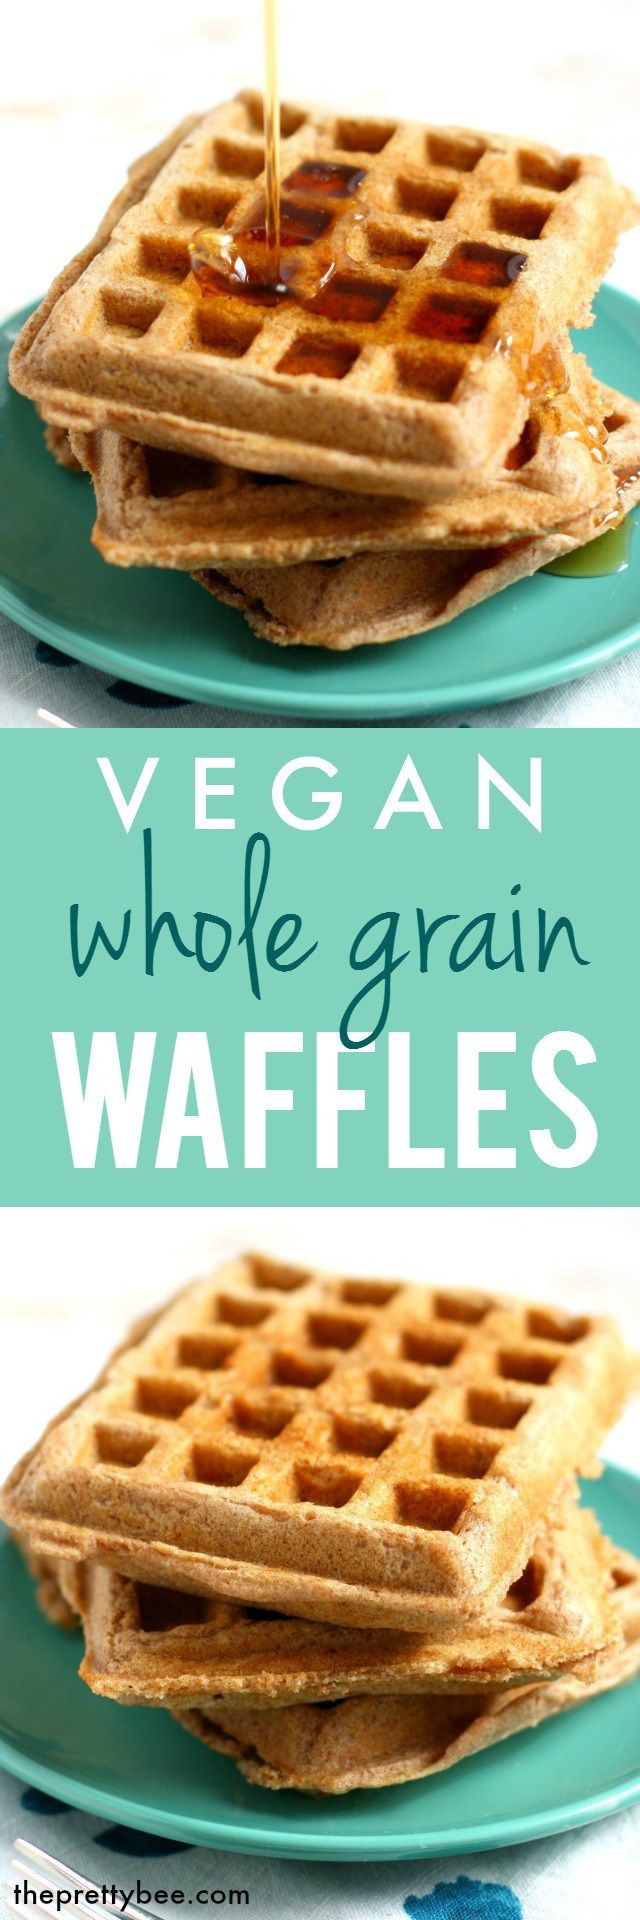 Vegan Whole Grain Spelt Waffles Recipe Delicious vegan